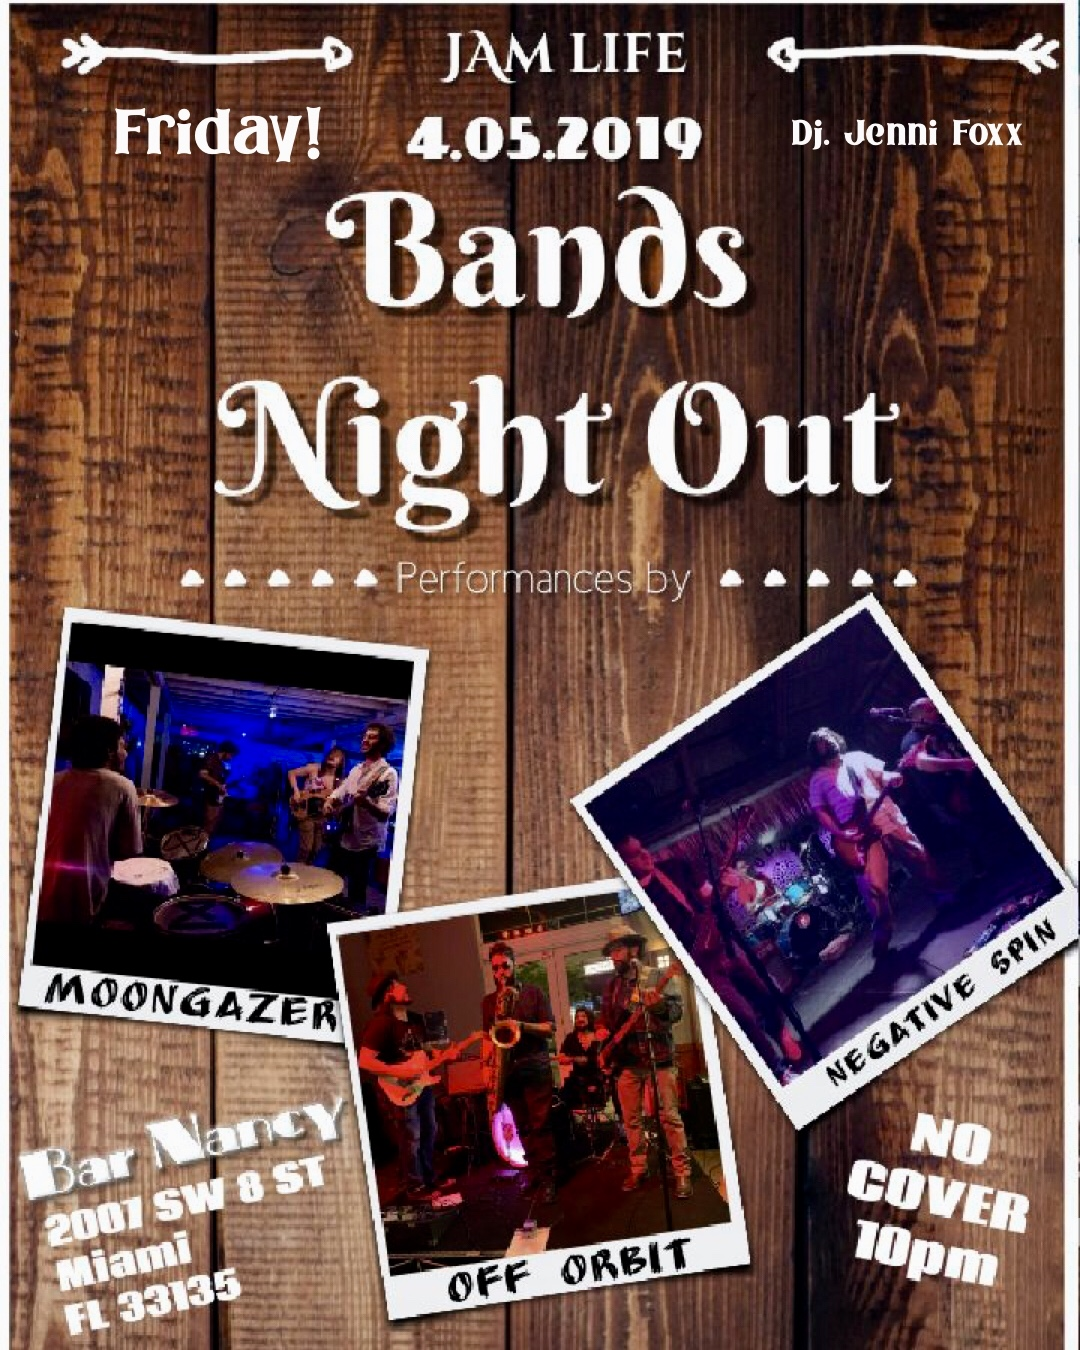 Bands Night Out! Featuring Off Orbit. Moongazer & Negative Spin! @ Bar Nancy - Friday, April 5, at 10 PM